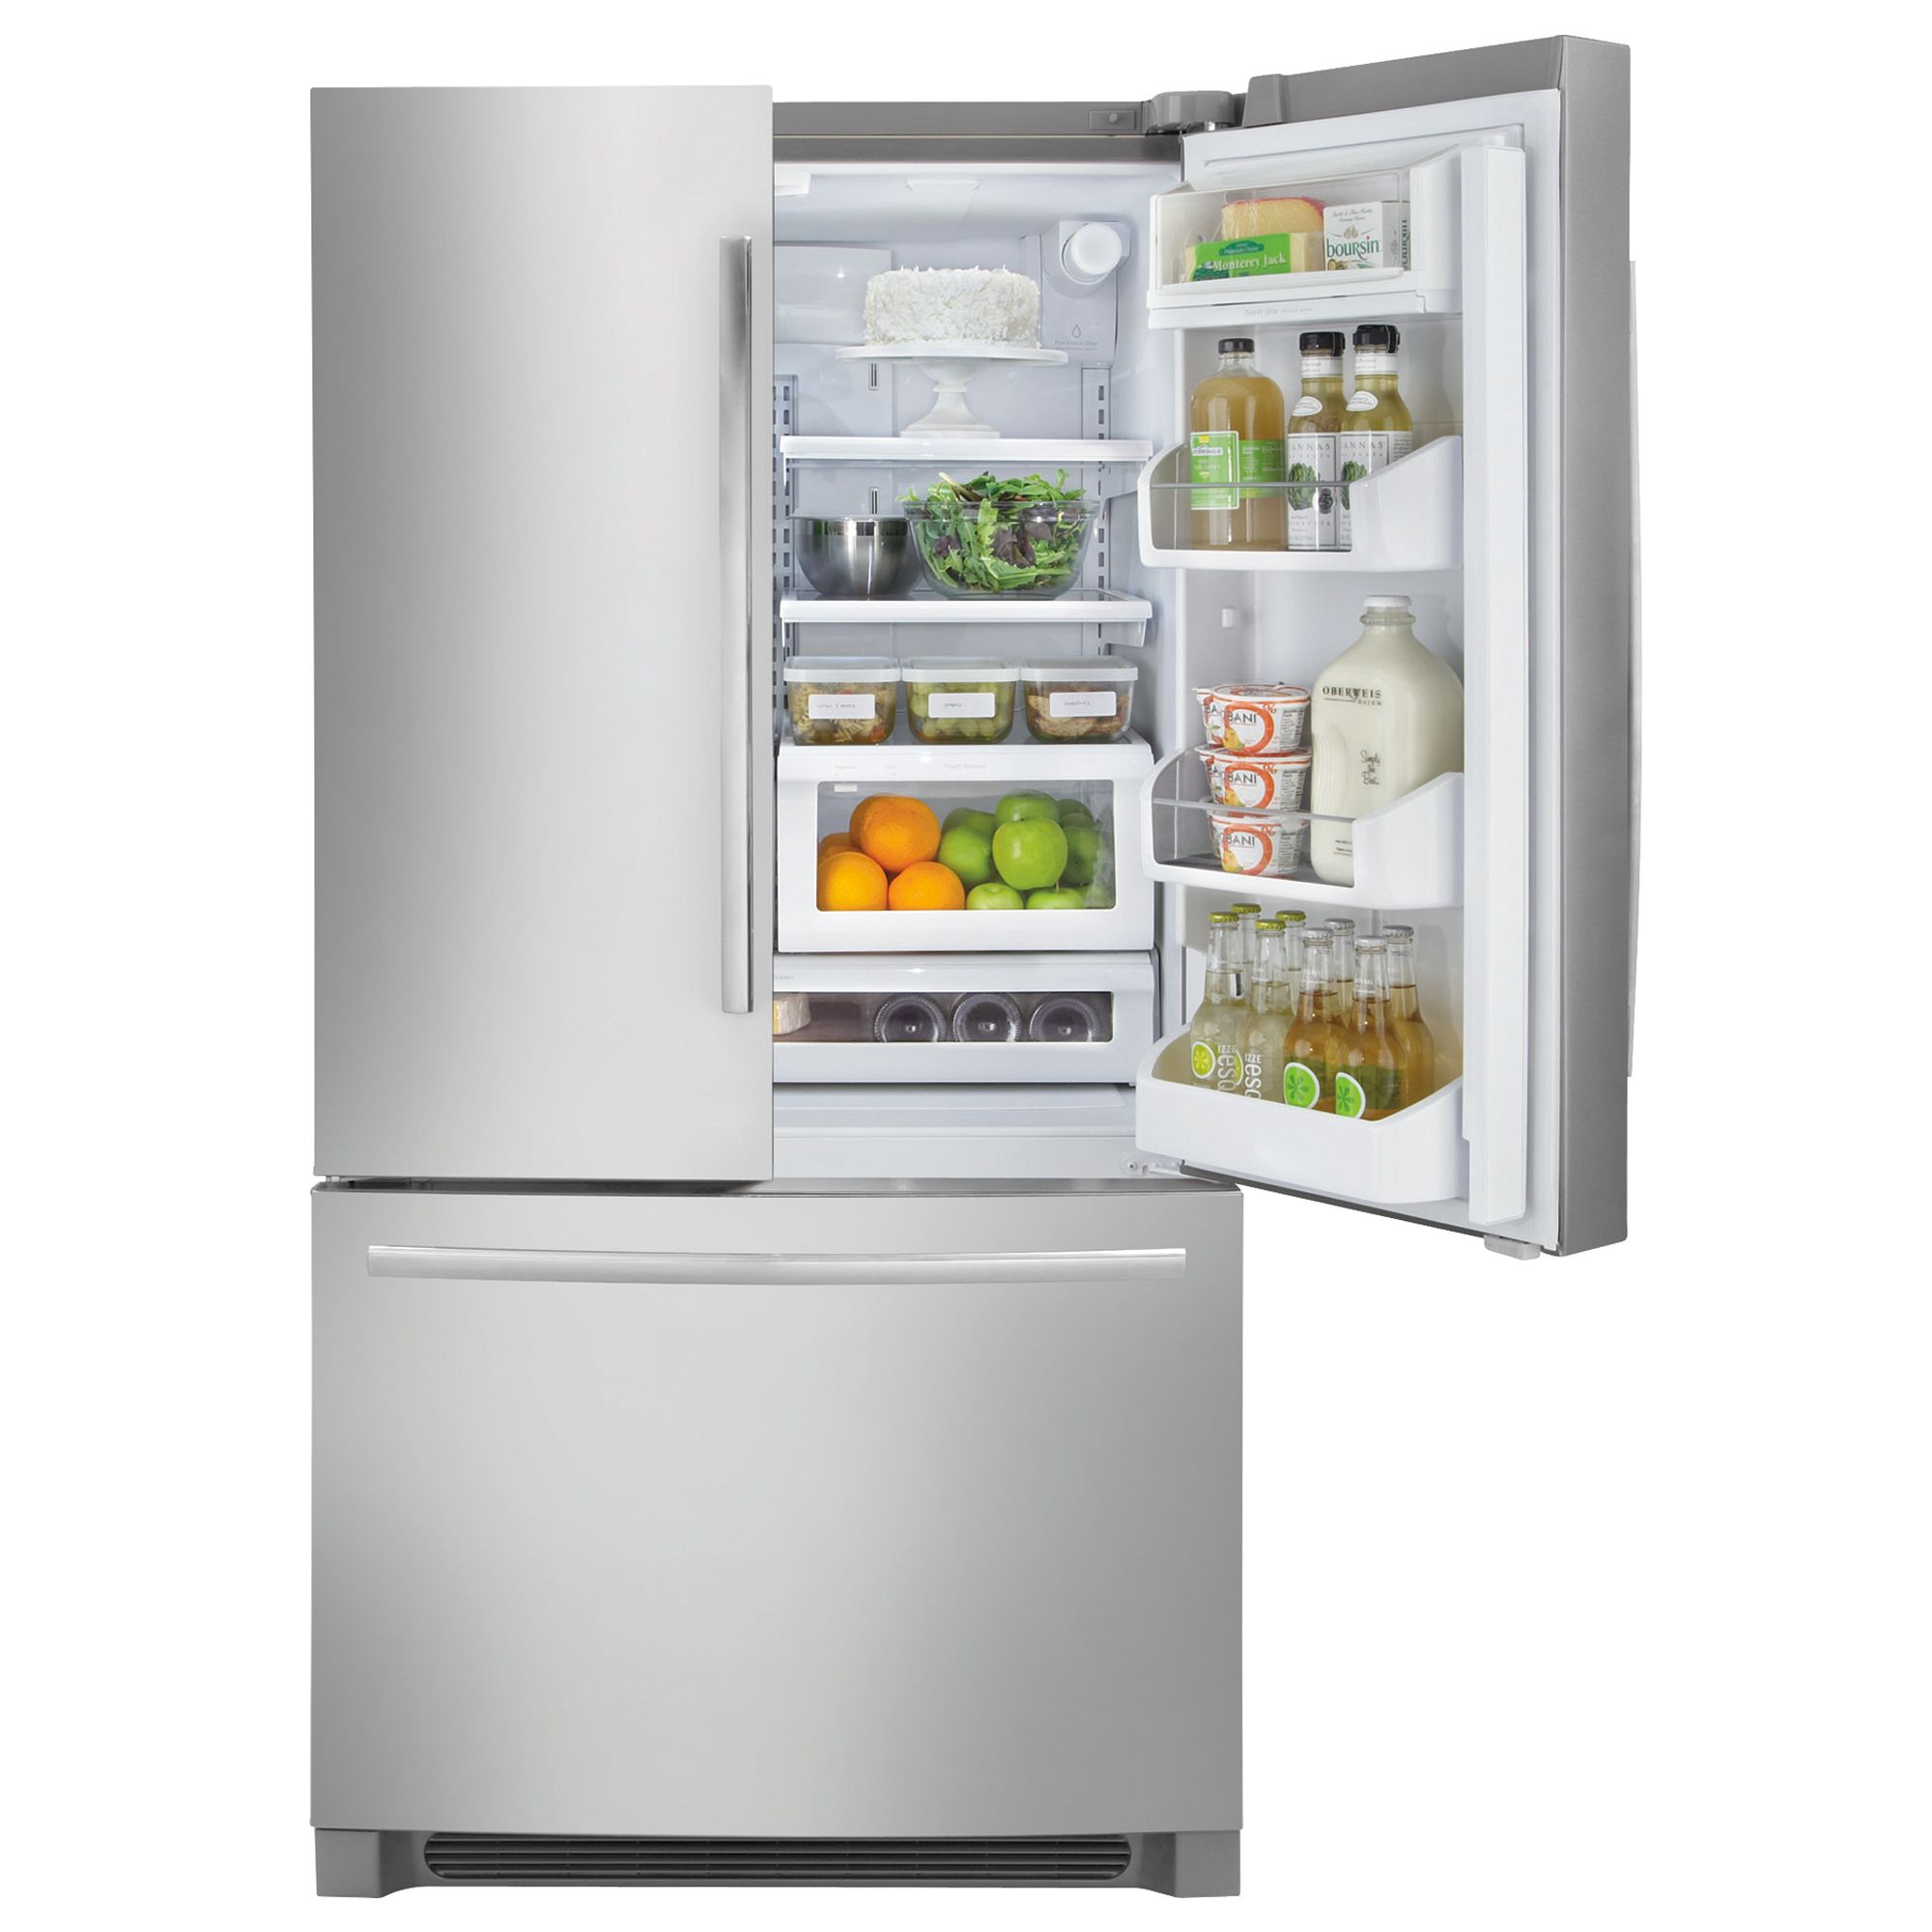 27.8 cu. ft. French-Door Bottom-Freezer Refrigerator                                                                             at mygofer.com